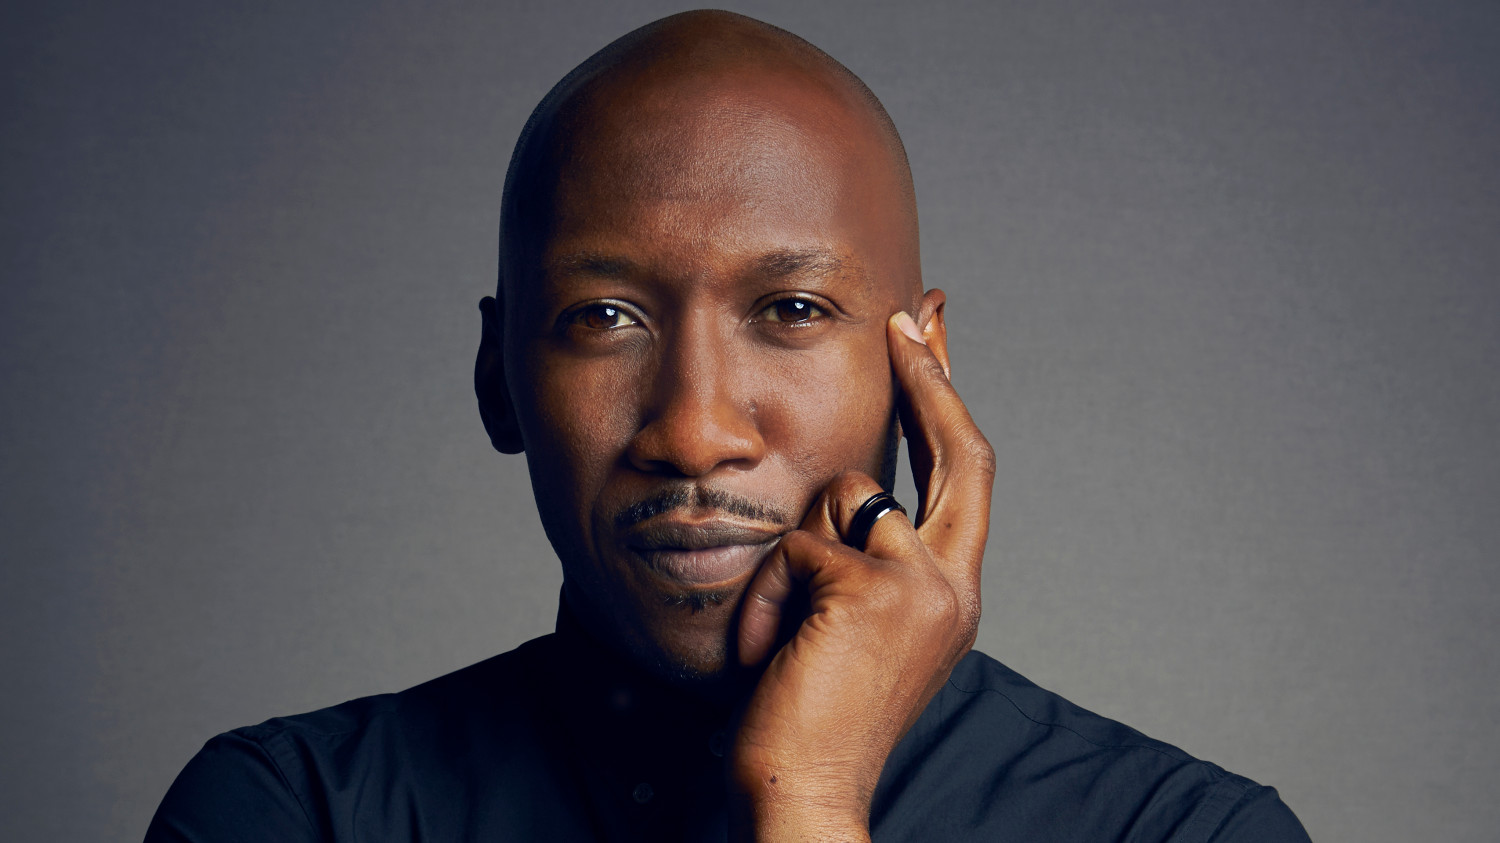 Mahershala Ali Bio, Age, Wiki, Parents, Married, Daughter, Net Worth